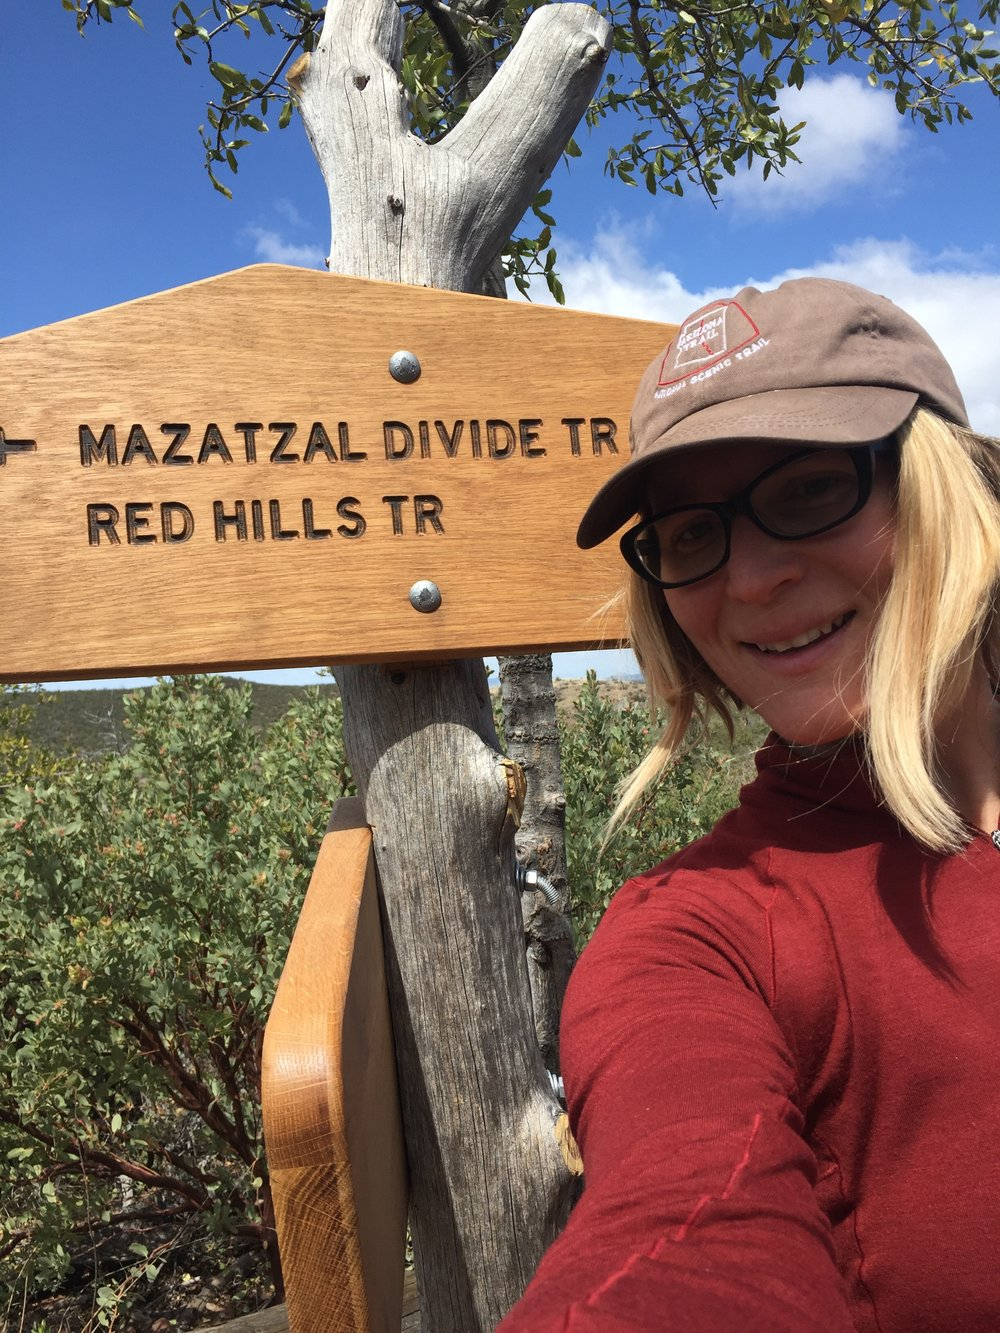 Finally made it to the divide!